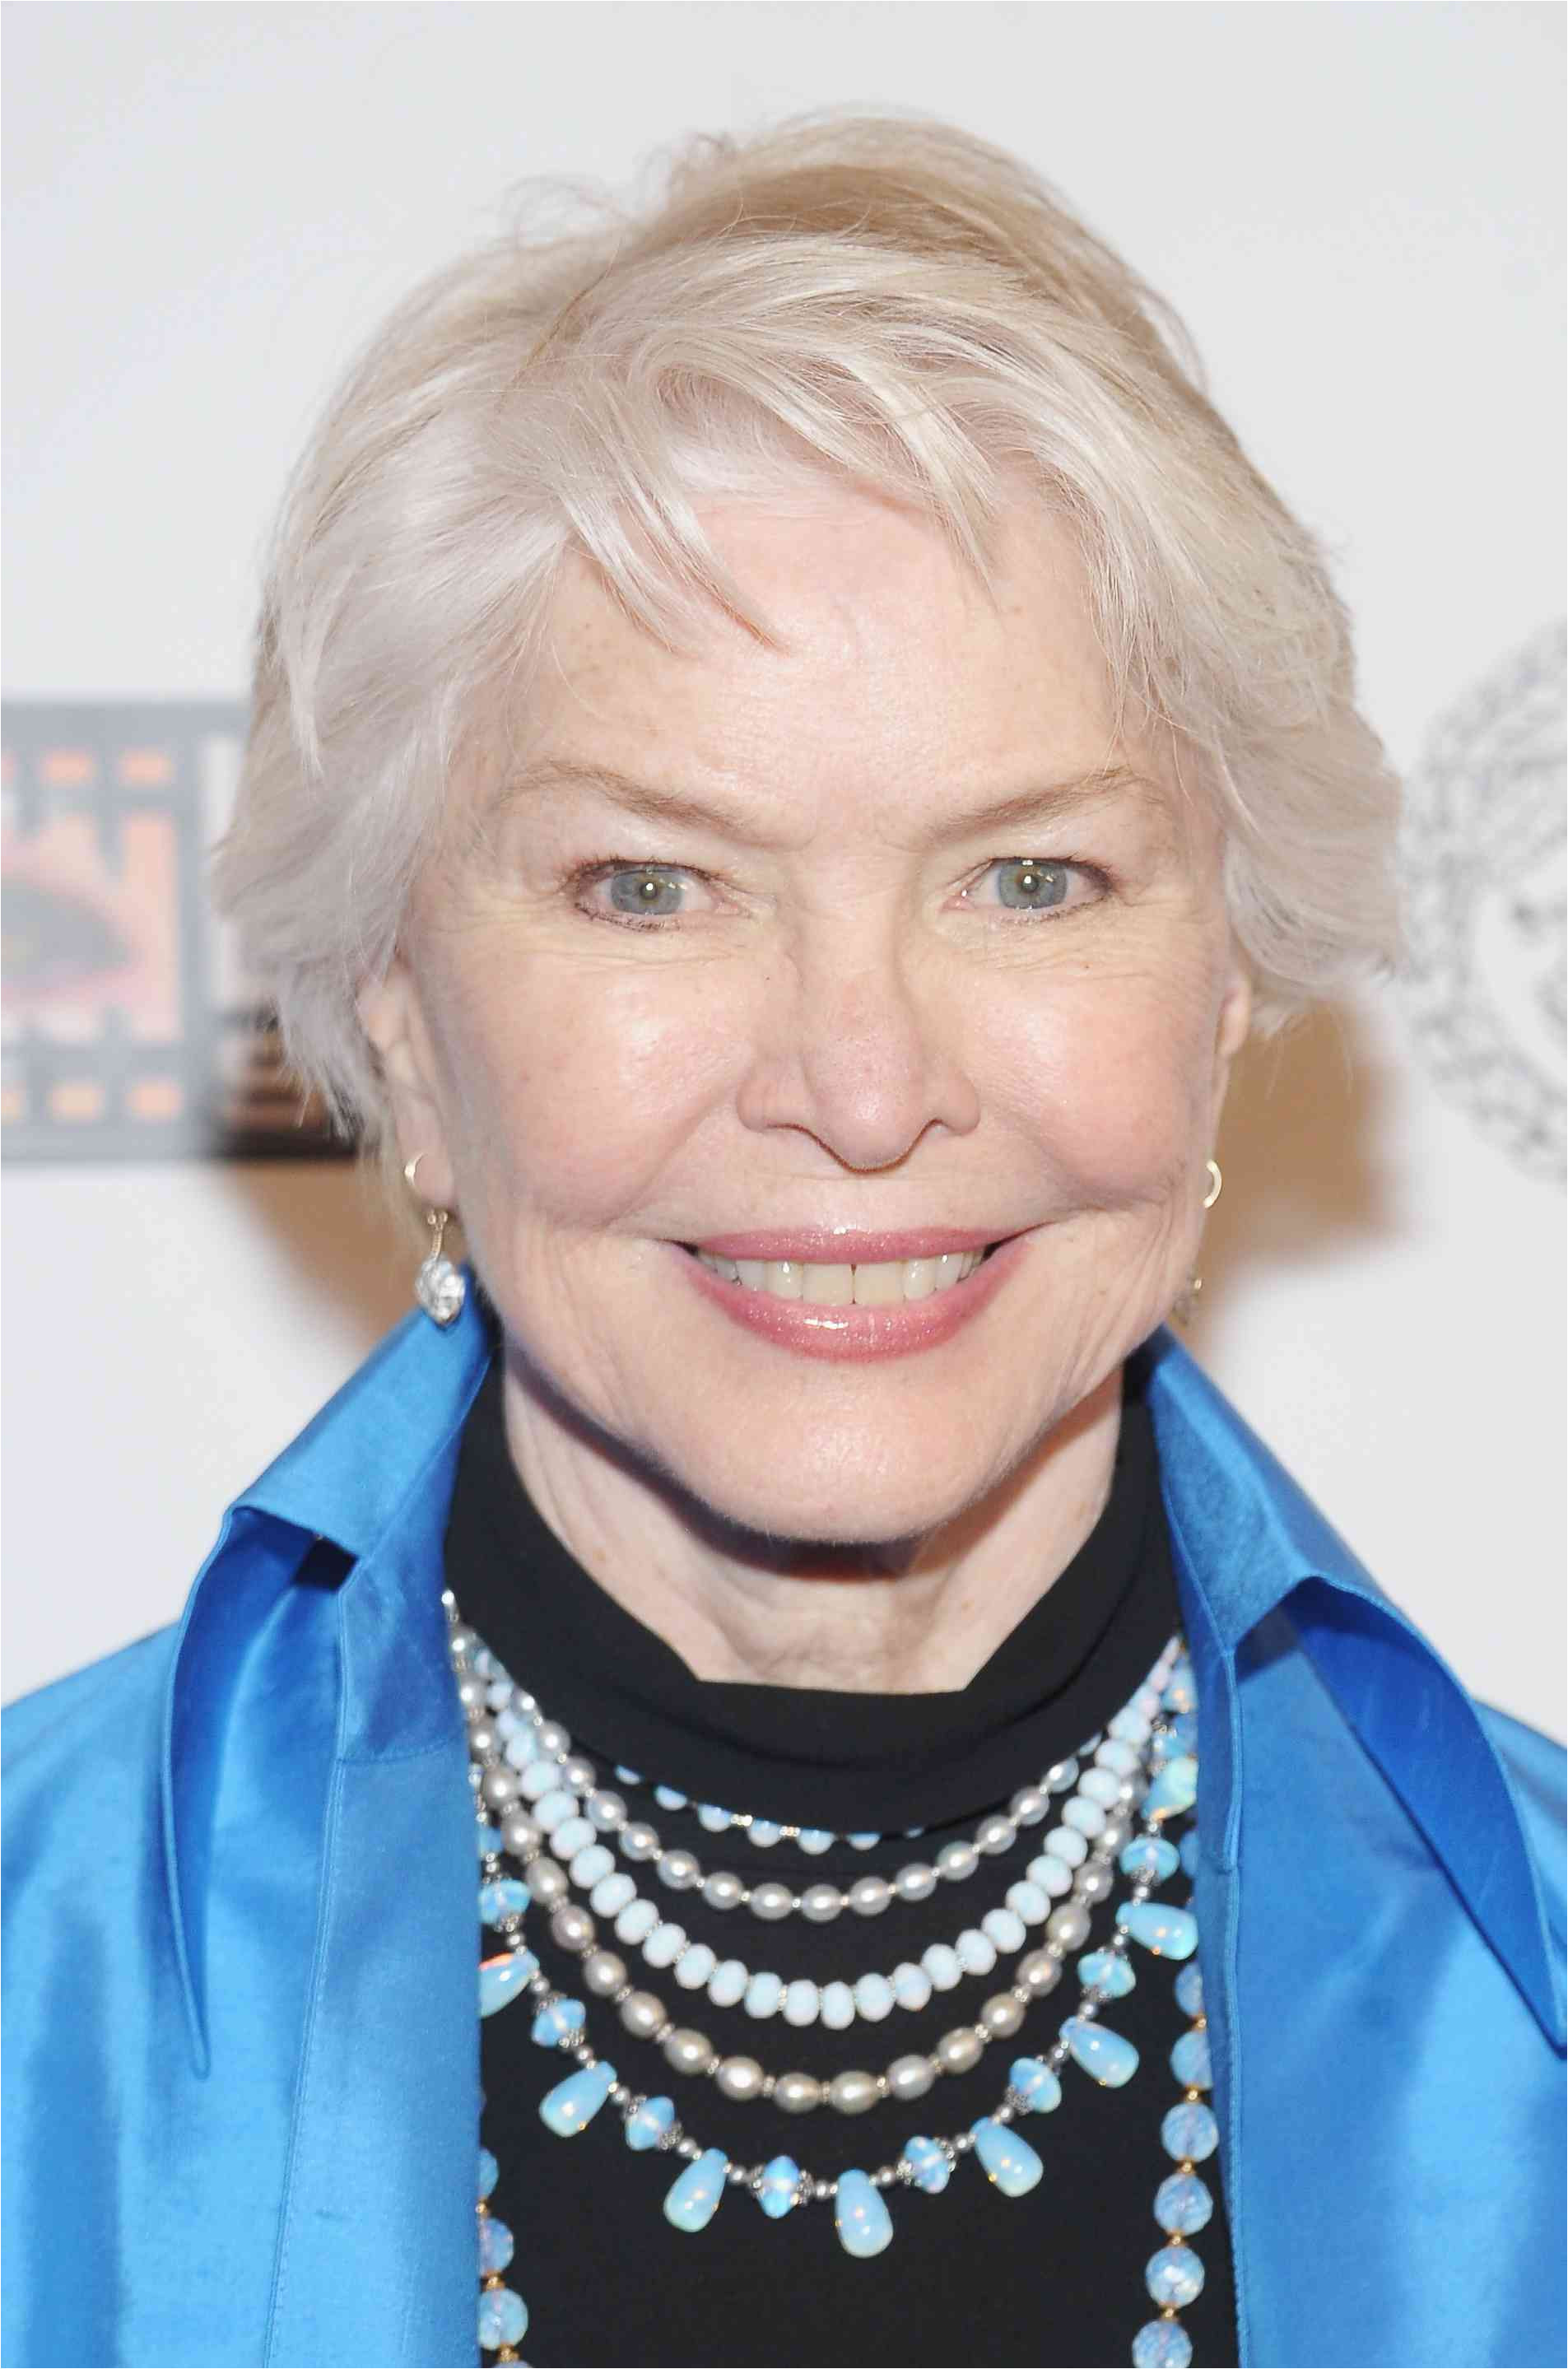 ellen burstyn older women hair 56a0848f5f9b58eba4b